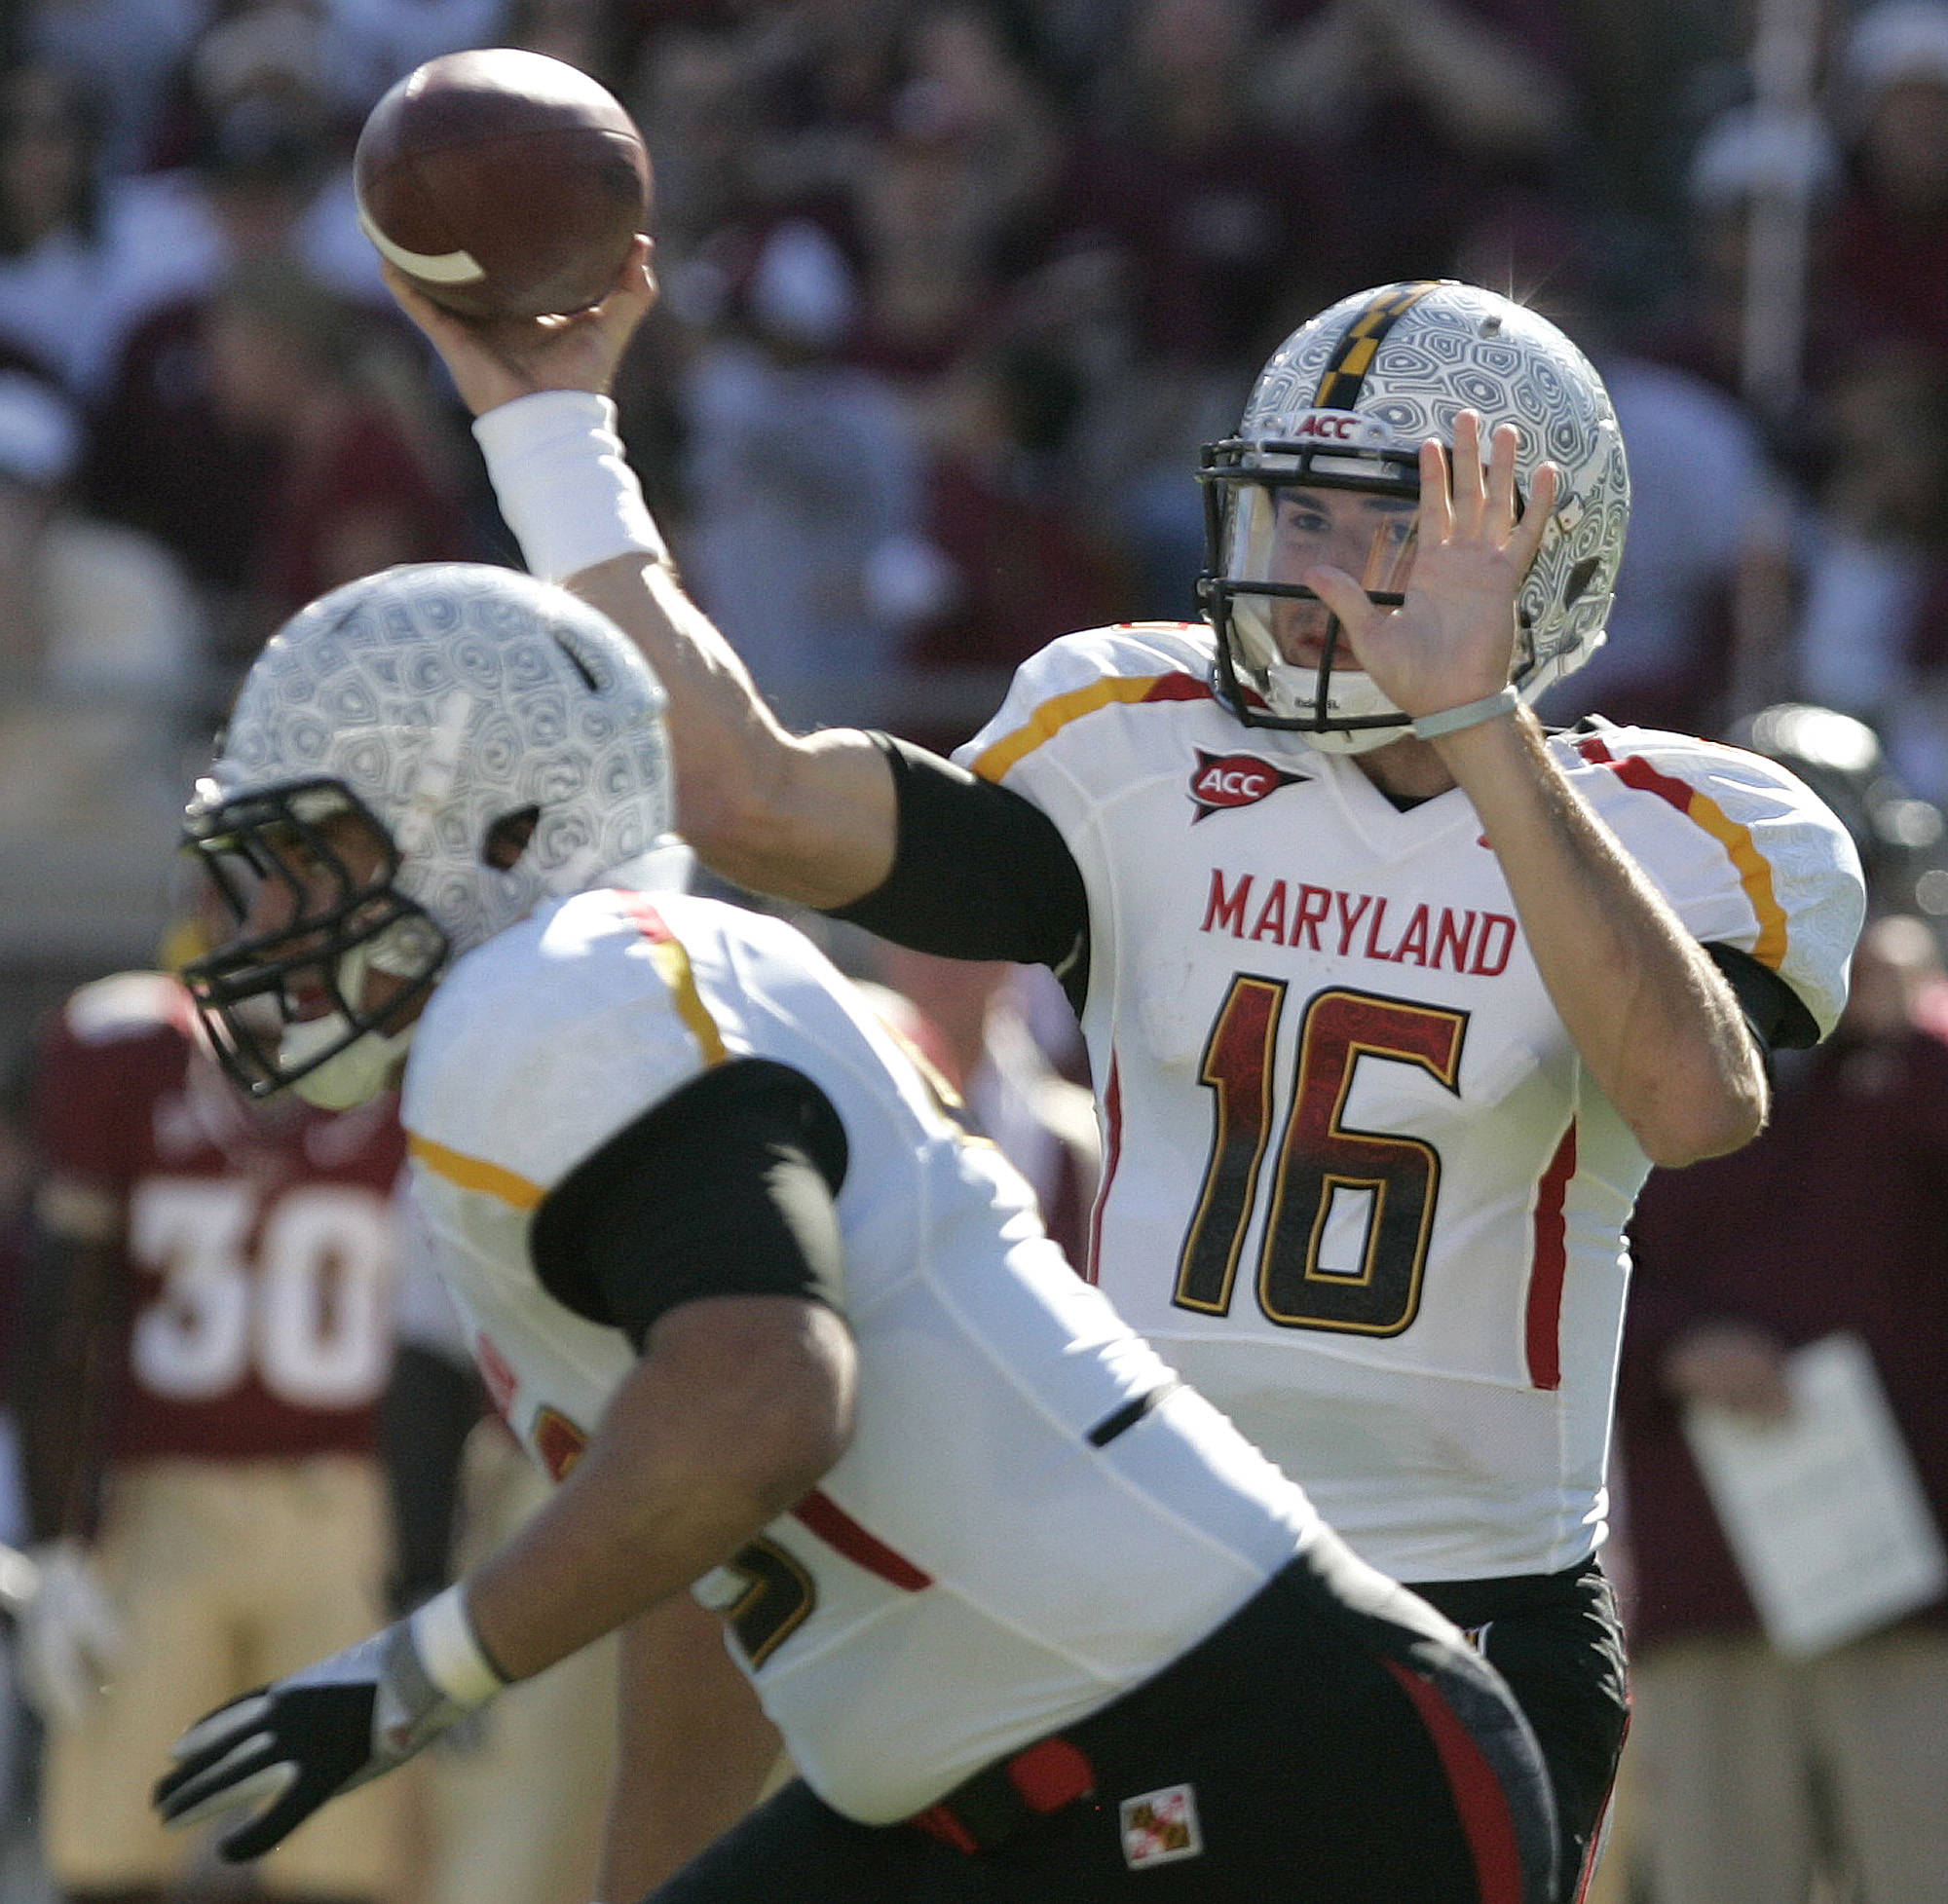 Maryland's C.J. Brown attempts a pass against Florida State.(AP Photo/Steve Cannon)